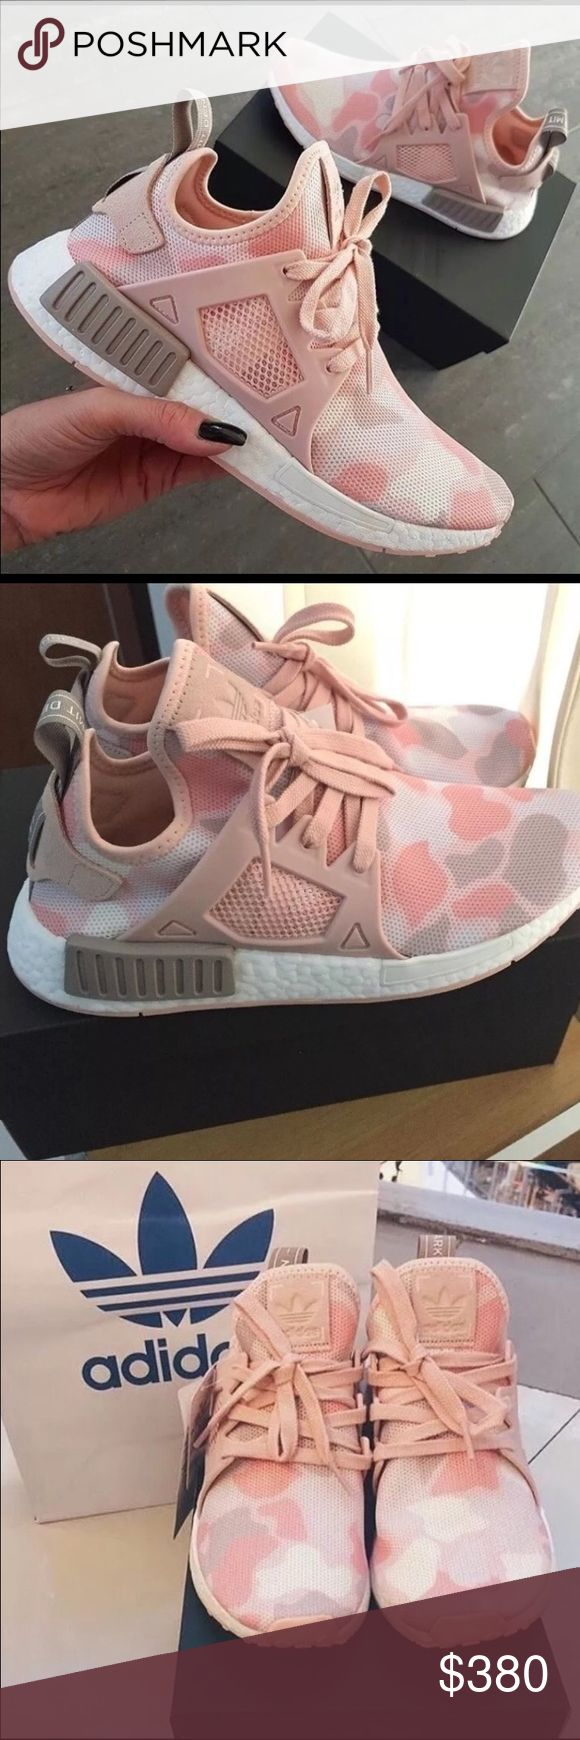 New in box • Adidas NMD XR1 Women Pink Duck Camo New Adidas NMD XR1 Women Pink Duck Camo. Have a soft camouflage pattern for a street worthy style. Built with a soft, textured adidas primeknit upper for a snug yet flexible fit. A TPU cage on the mid foot, while boost helps energize your steps. Breathable and flexible. Rubber outsole. Bought from adidas website. Never worn. I'm open to reasonable offers. Keep in mind, I had to pay tax + shipping and posh takes a 20% fee!! ••• ** Please no low…